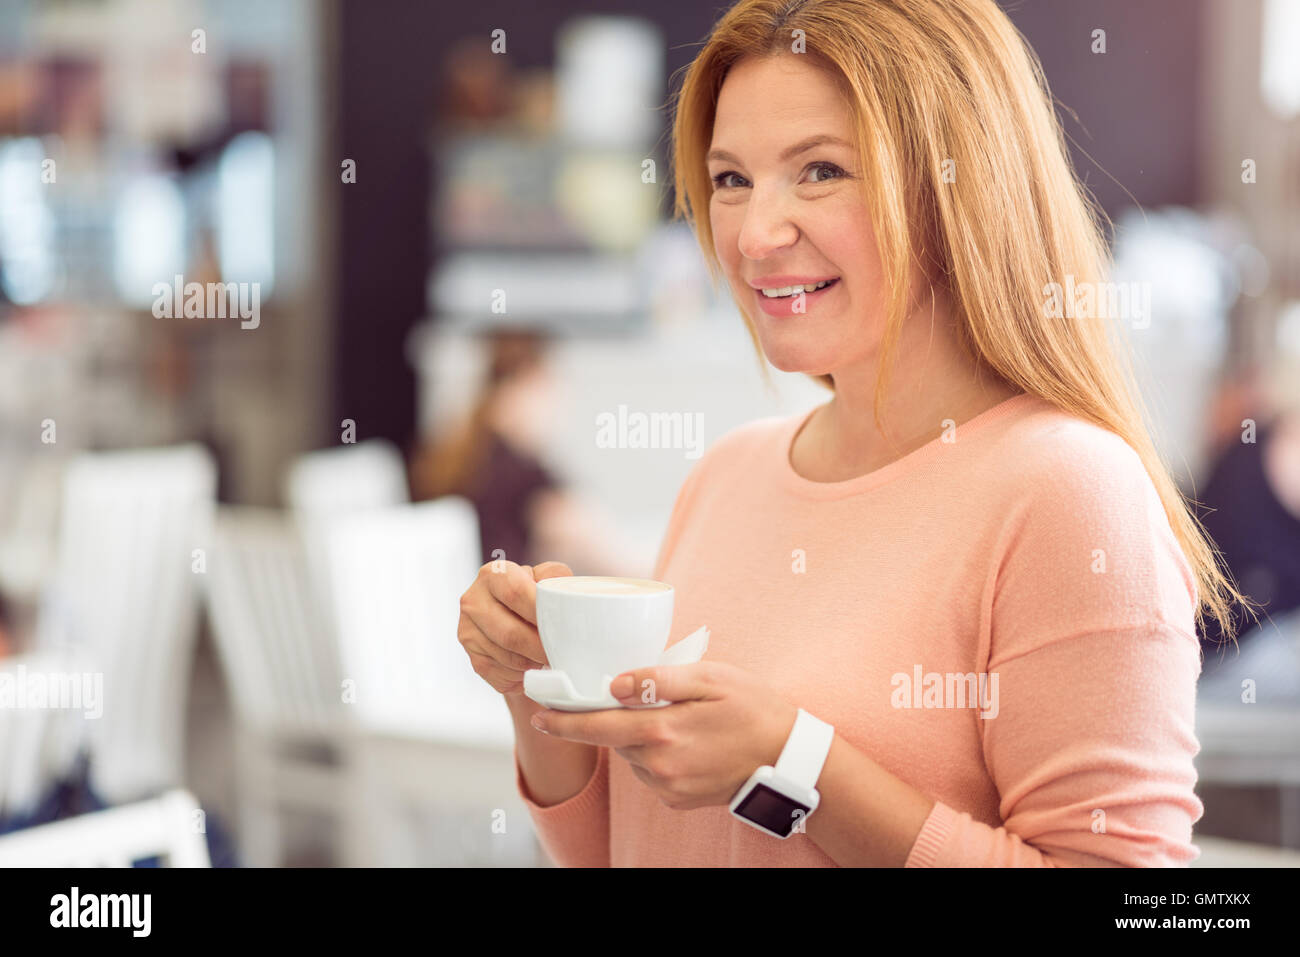 Cheerful woman drinking coffee - Stock Image